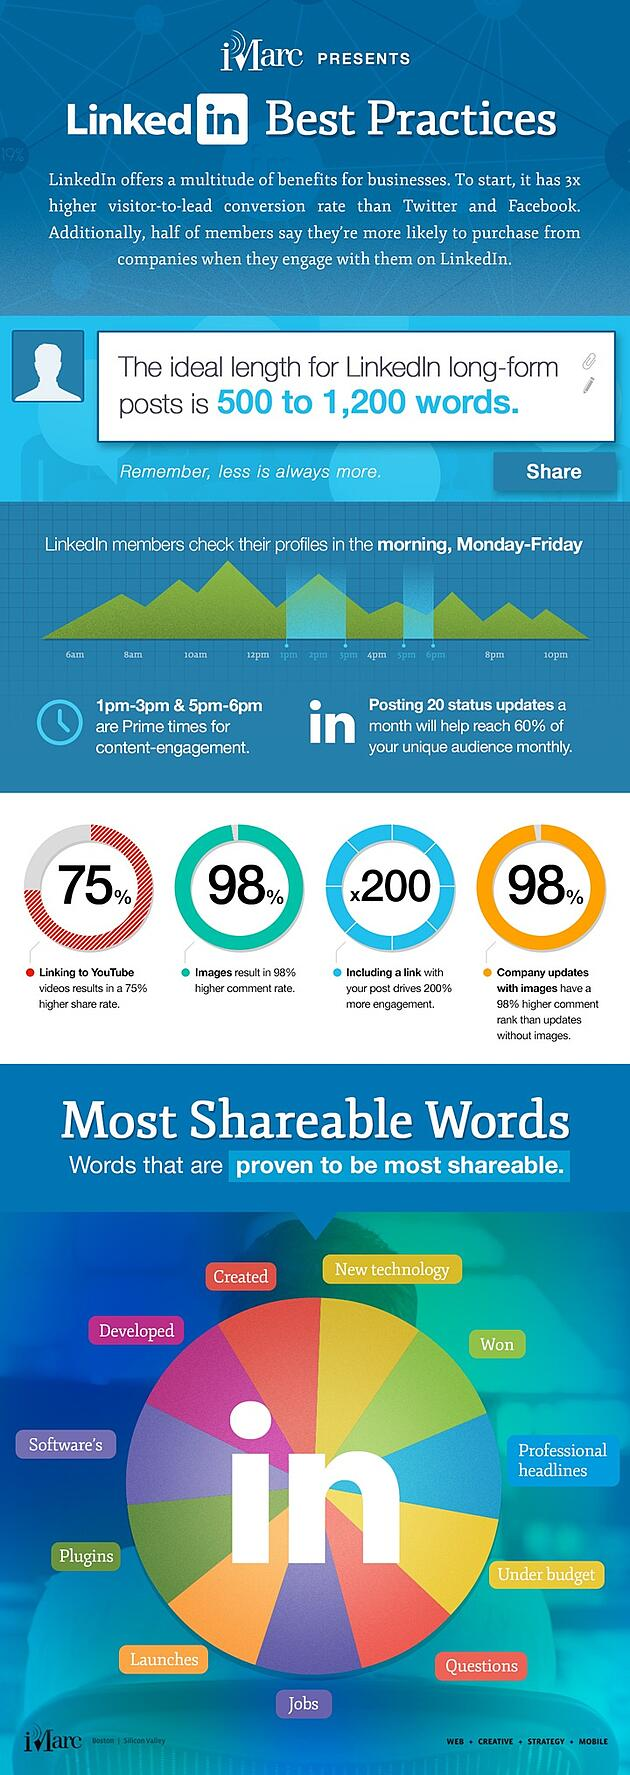 How To Gain More Engagement On LinkedIn With Proper Post Practices Infographic image